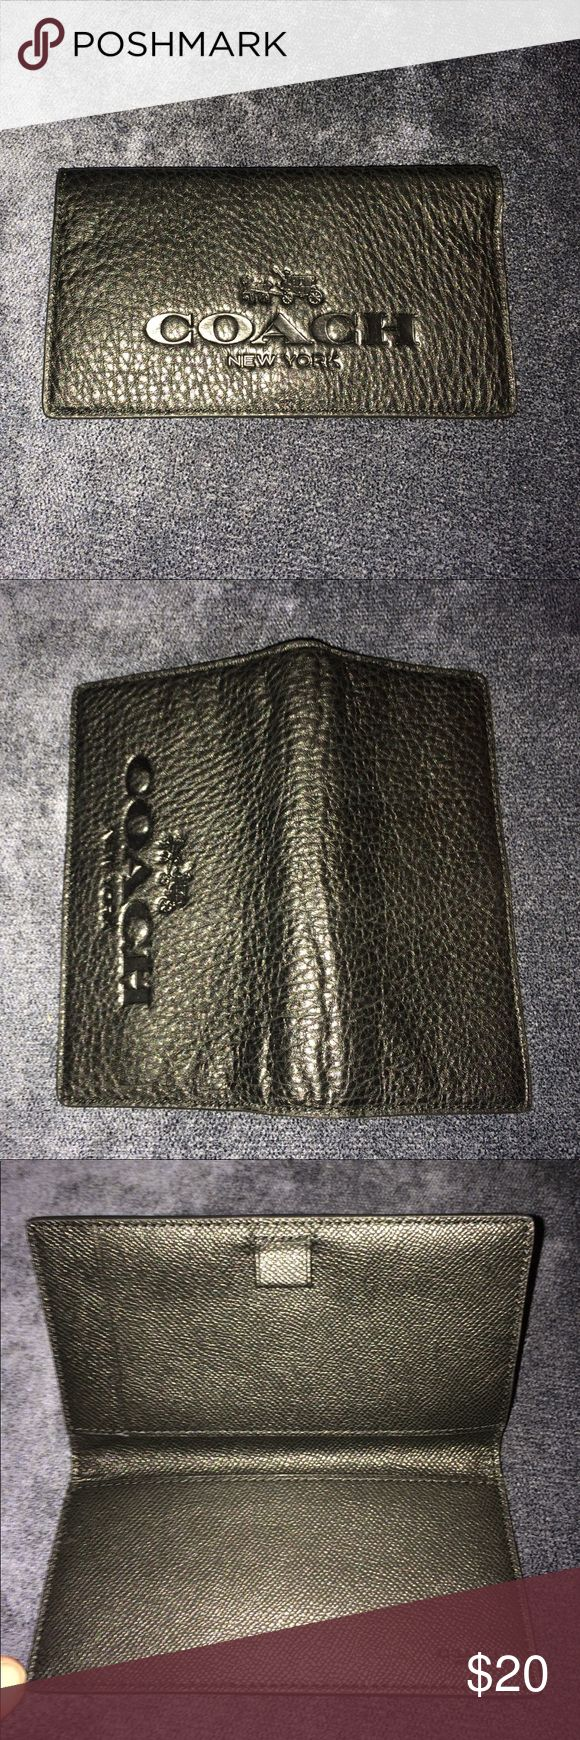 Coach Black Pebbled Leather Checkbook Cover Coach Black Pebbled Leather Checkbook Cover Wallet. Great Condition. Lots Of Wear Left. Questions Welcome Thanks For Looking. Coach Bags Wallets